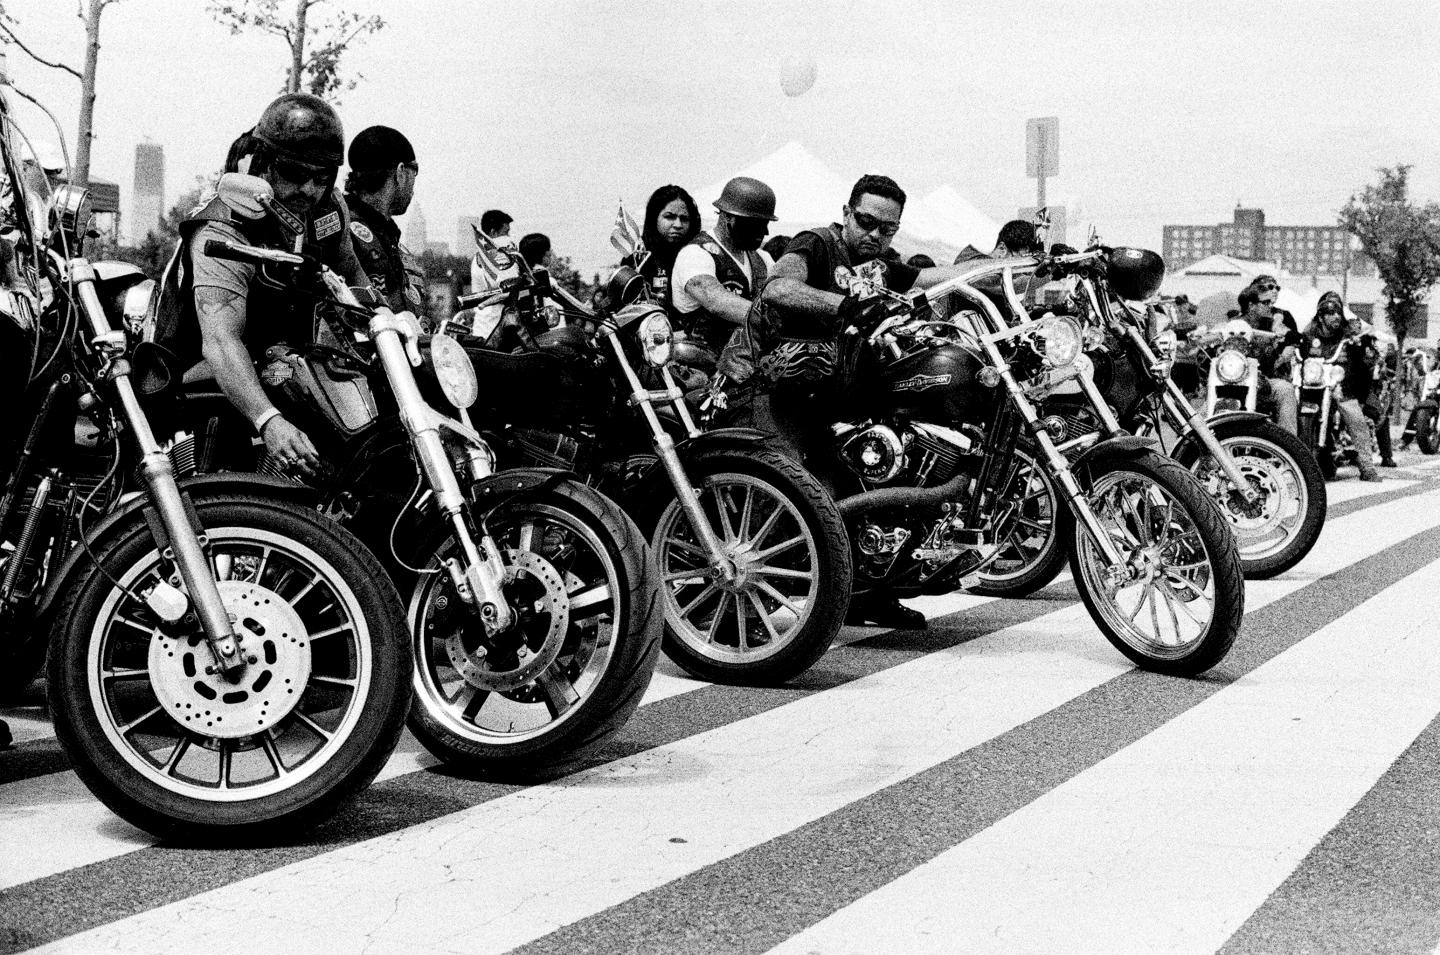 Unknown Motorcycle Club